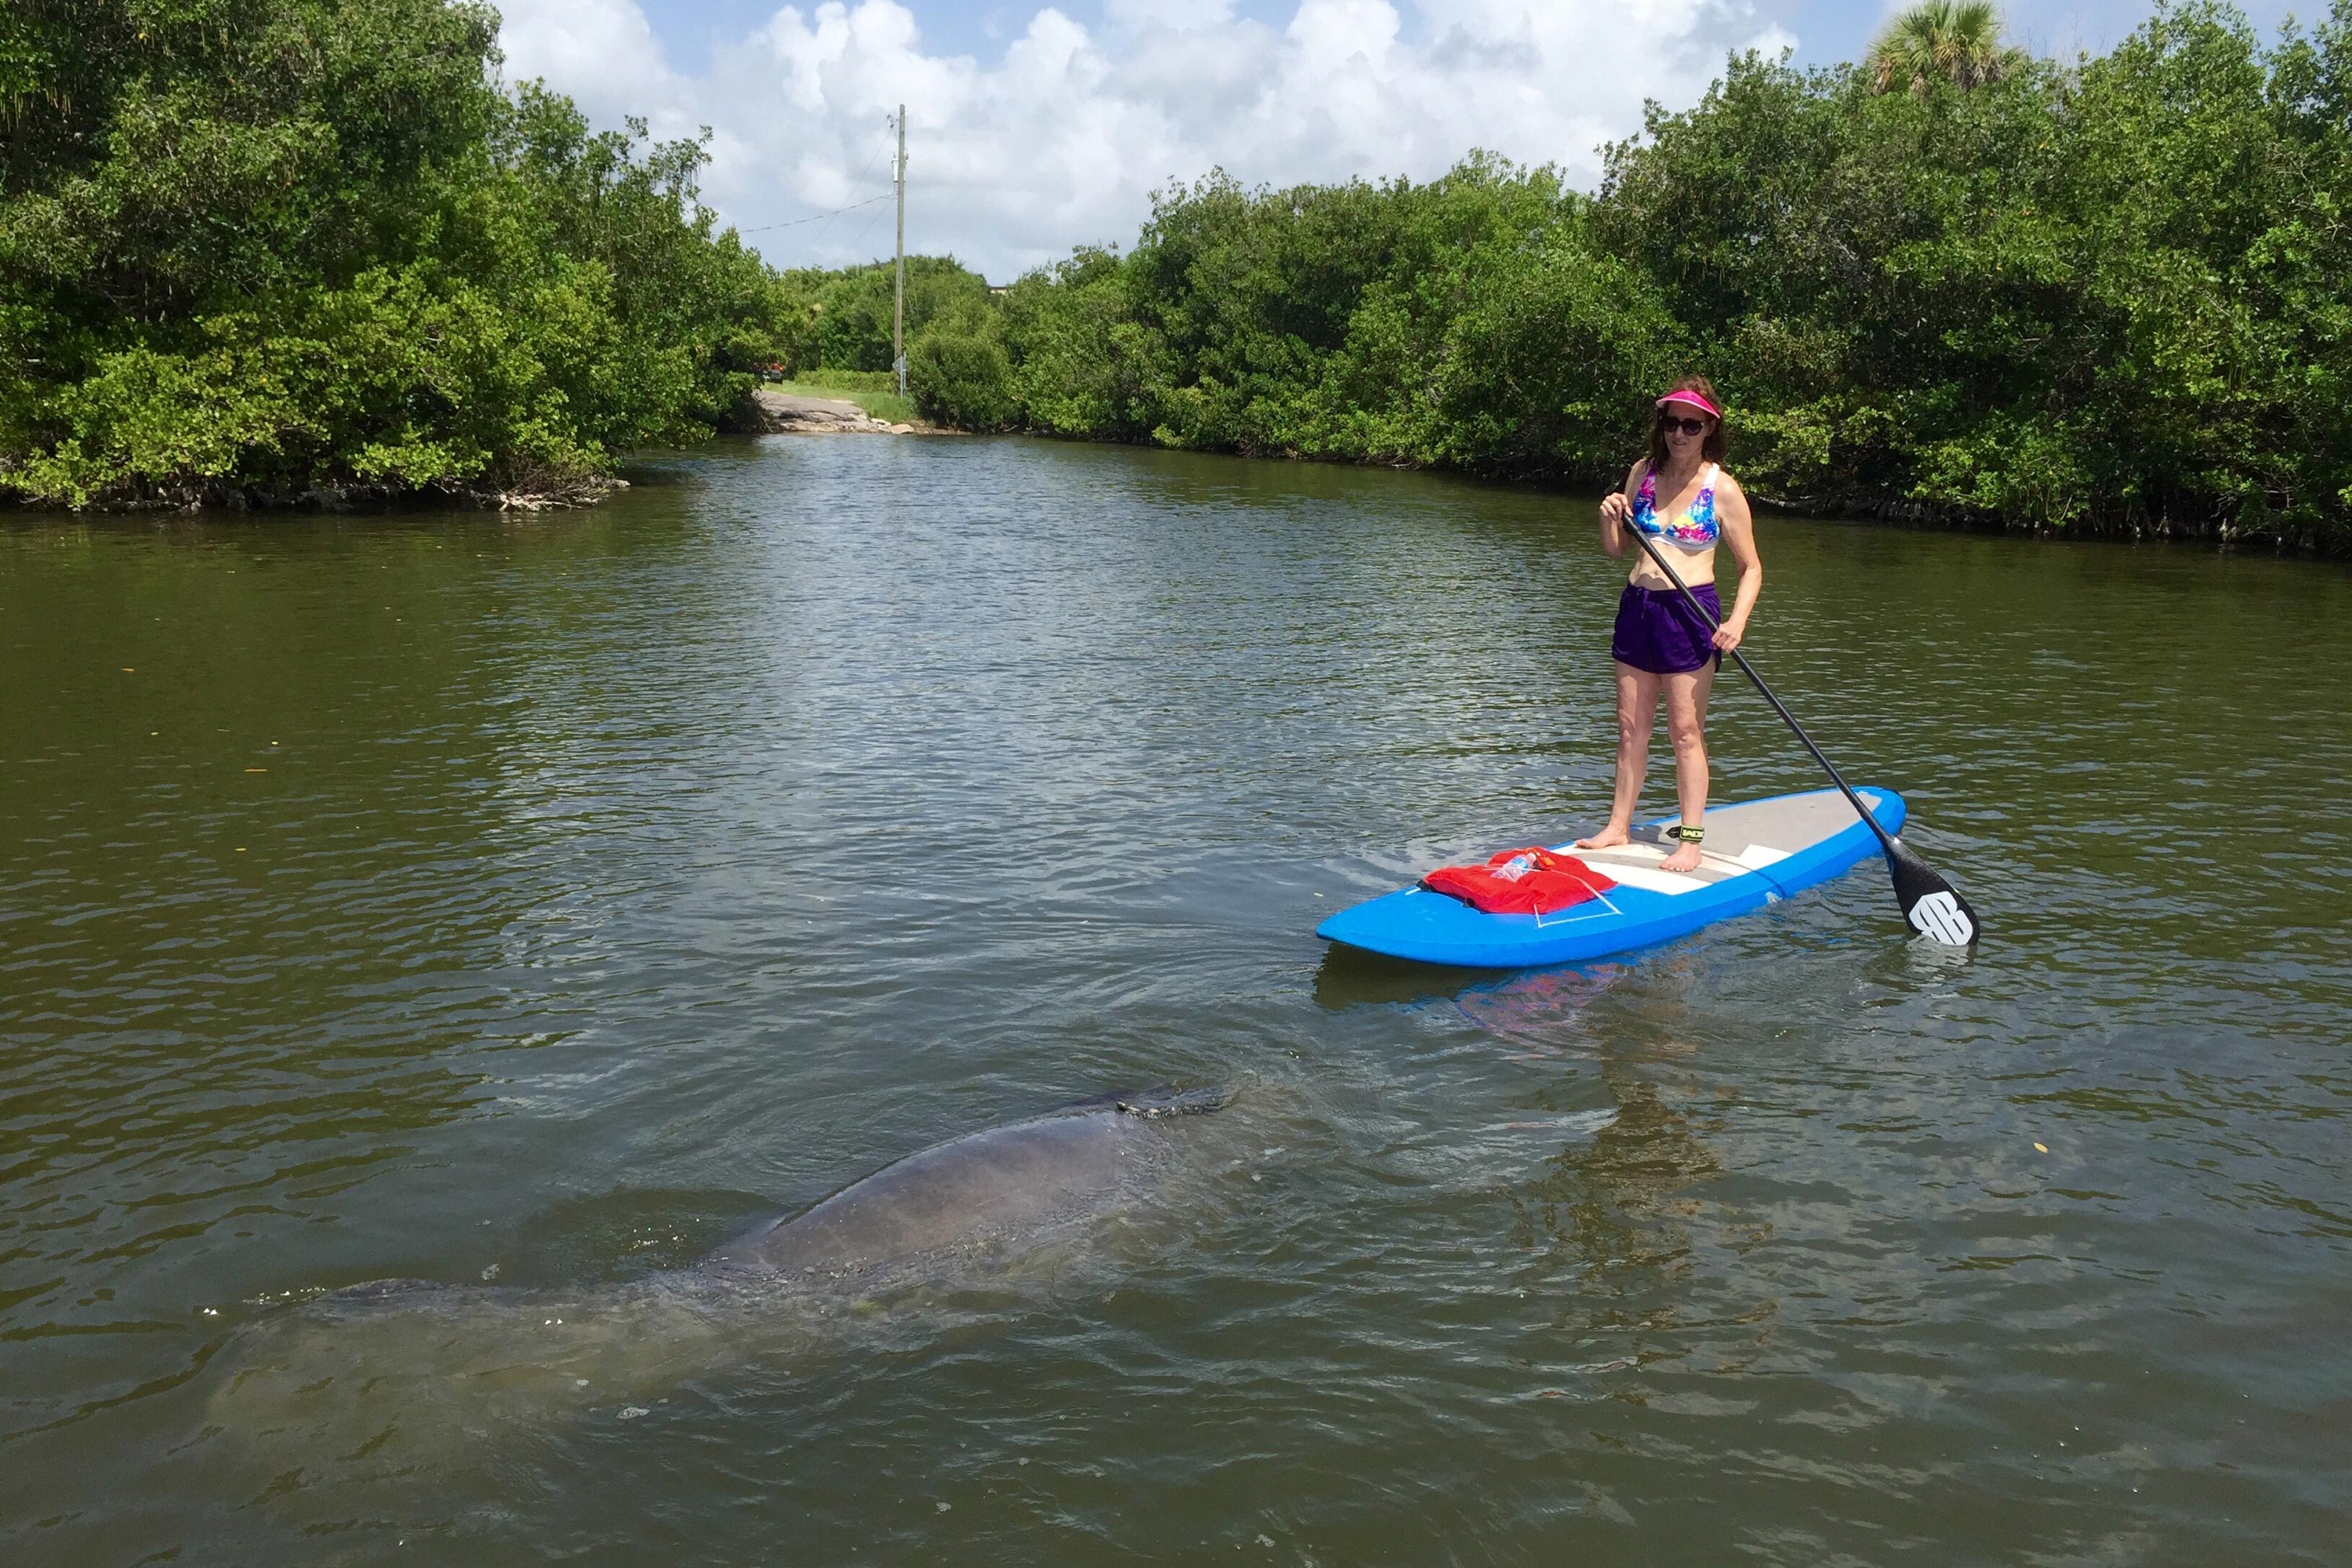 sobe surf manatee eco tour paddle board and kayak tours cocoa beach florida orlando area